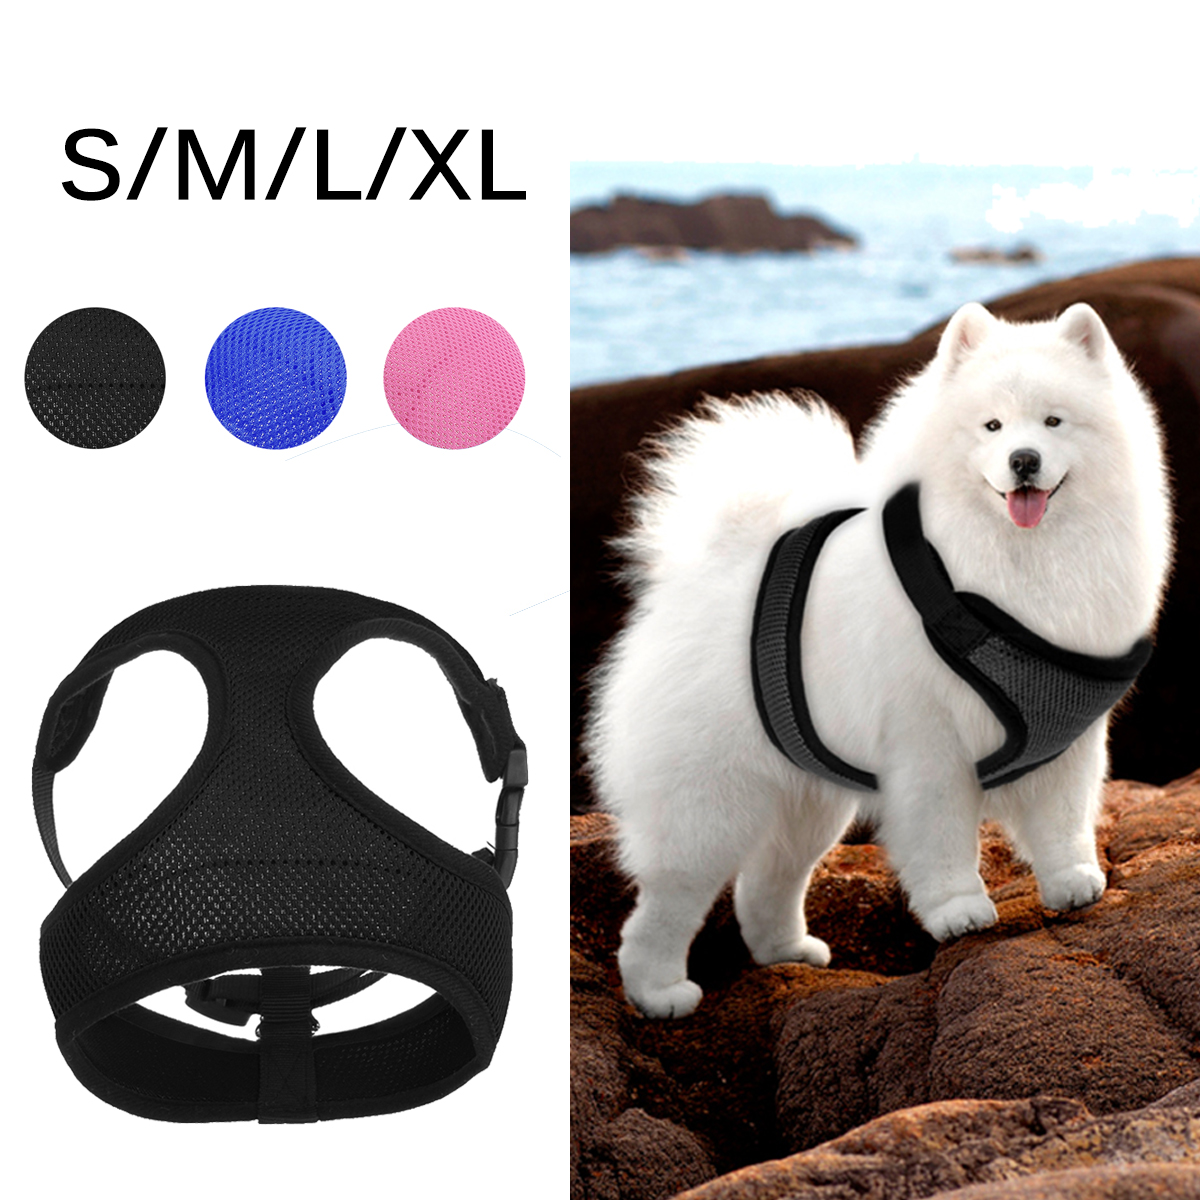 3 Colors Comfort Soft Mesh Padded Adjustable Dog Puppy Comfortable Harness Dog Walking Harness for Puppies, Small Dogs[Size:S,M,L,XL]